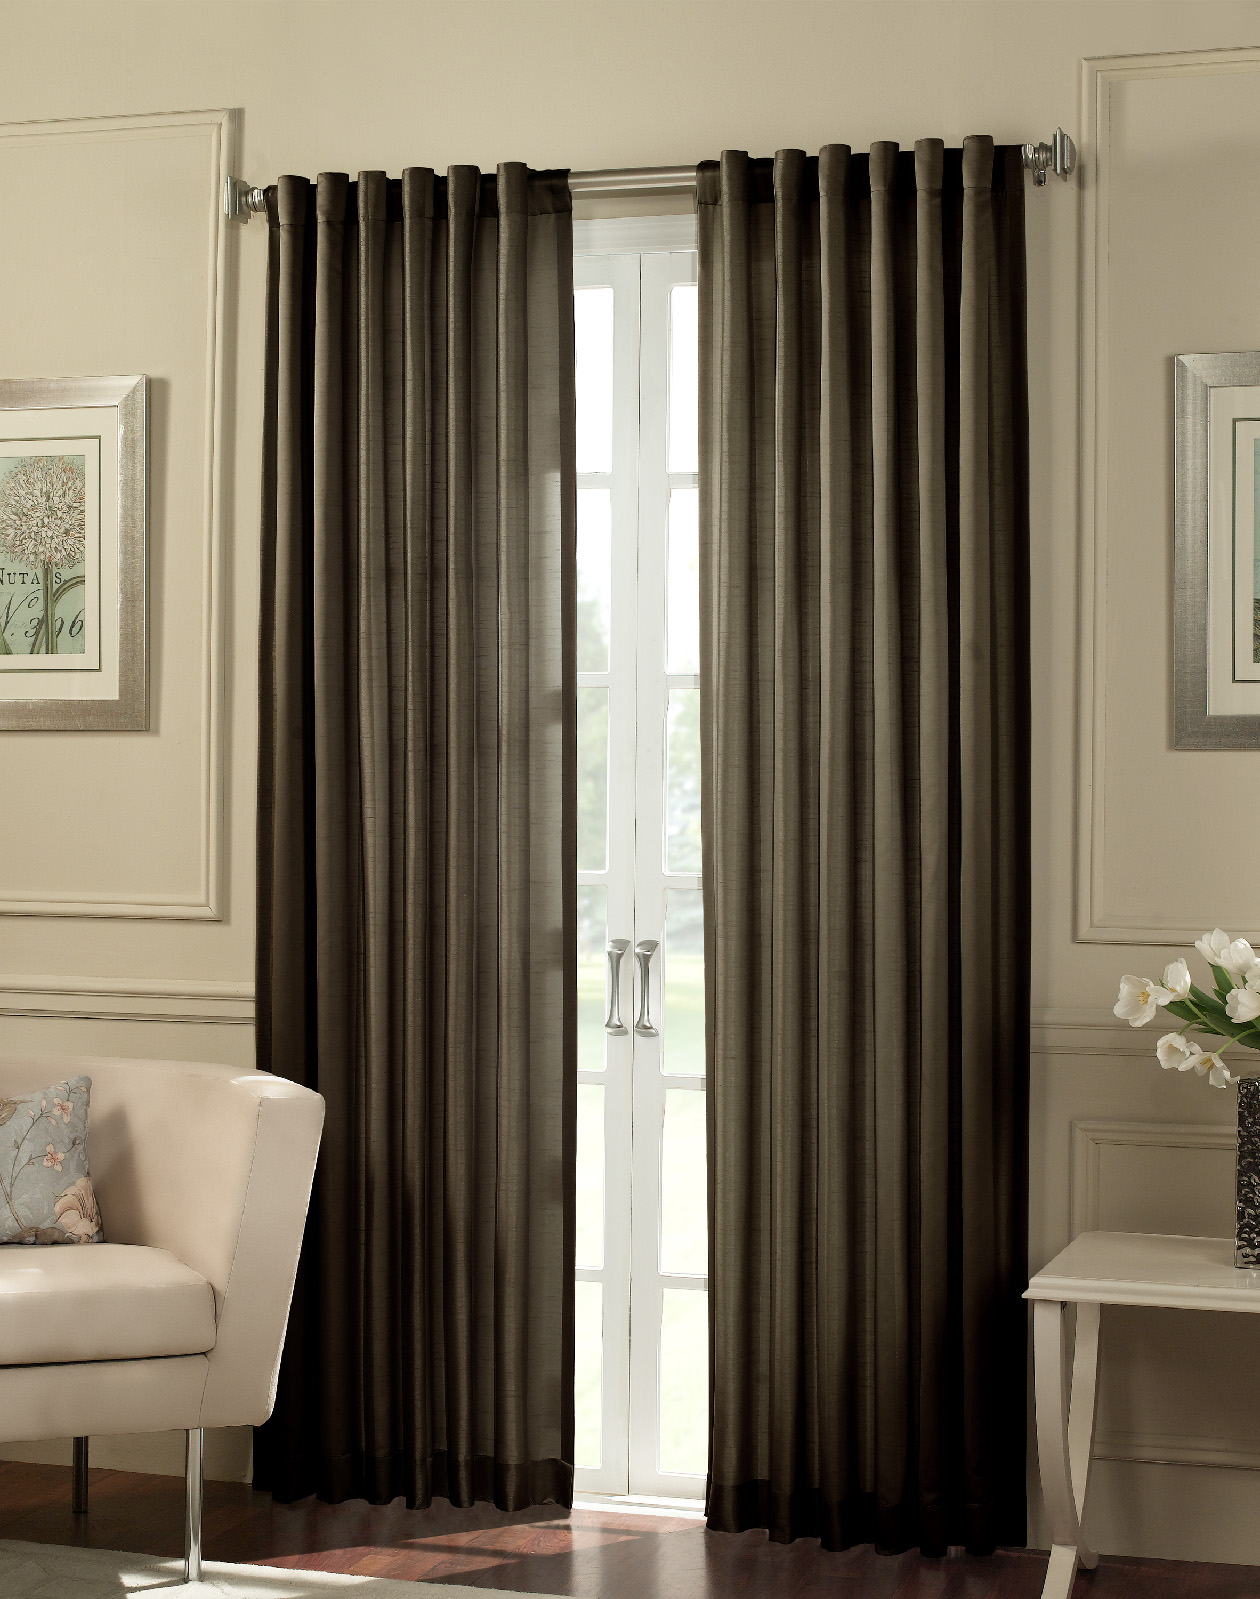 Window Curtain Panel (View 10 of 10)